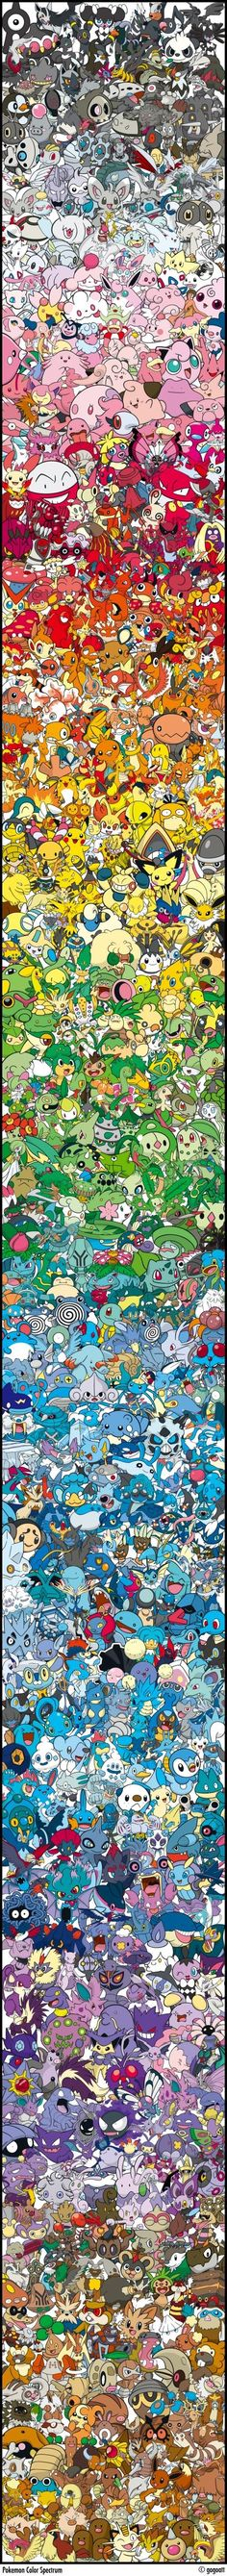 ALL THE POKÉMON